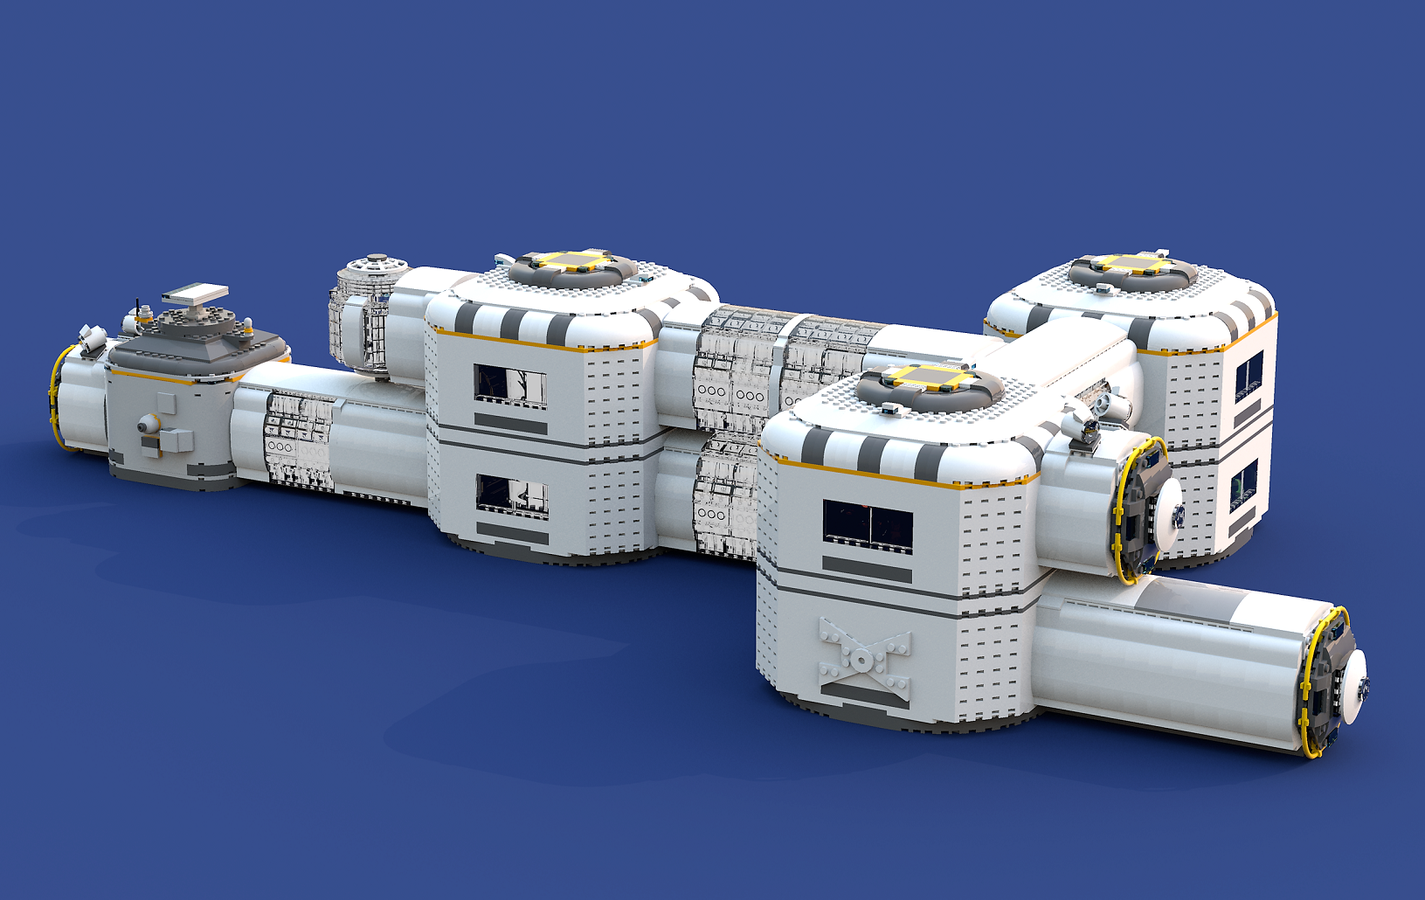 lego ideas product ideas subnautica underwater base in the